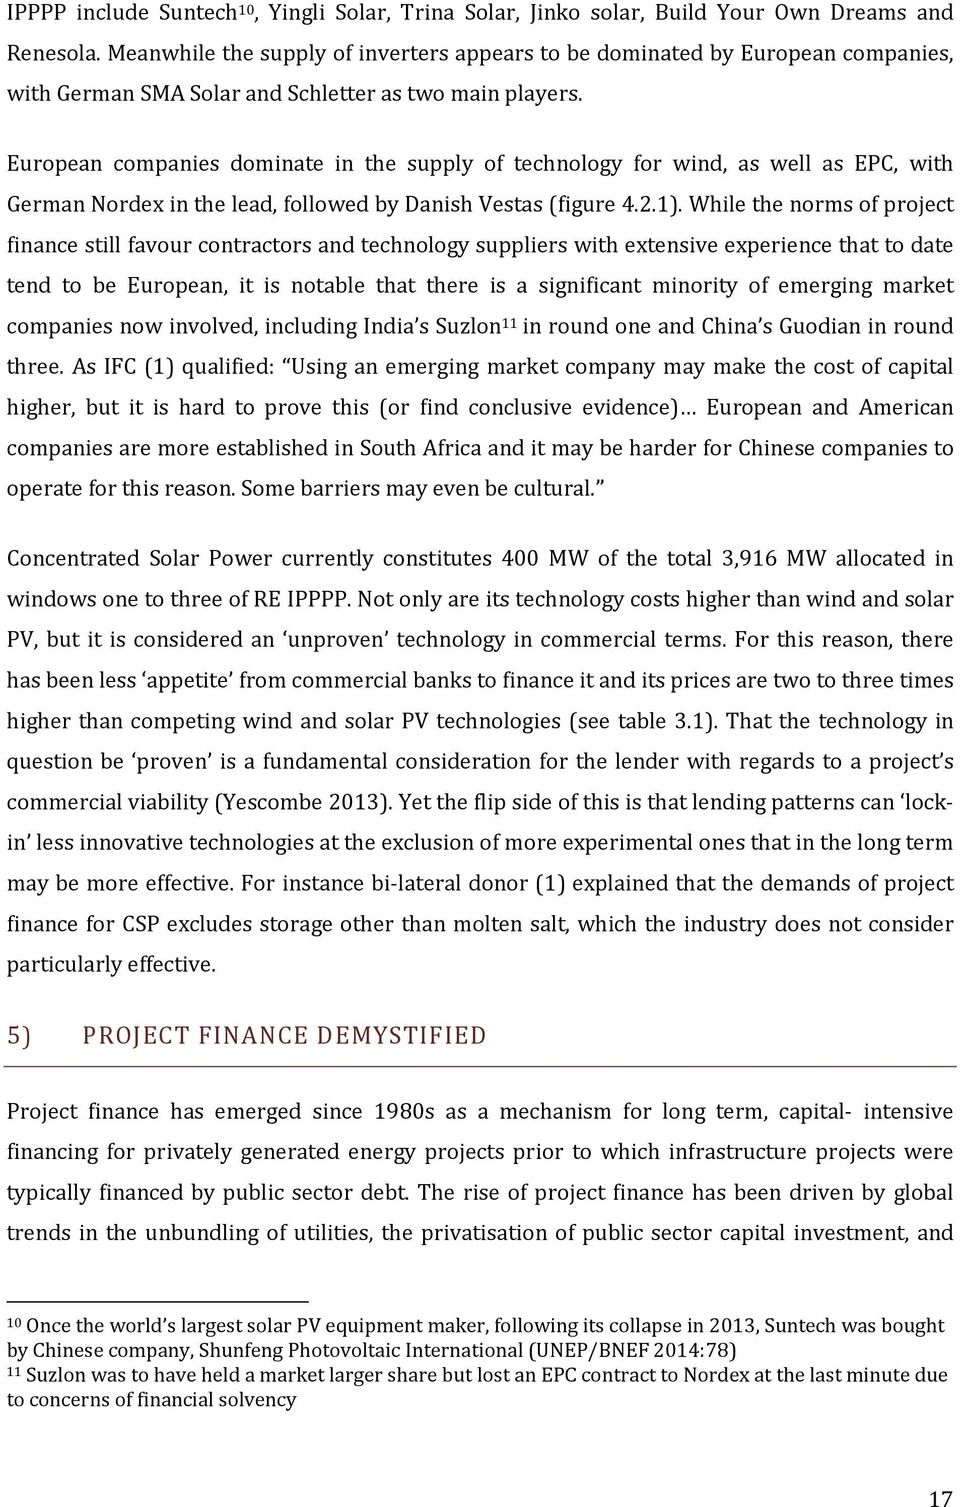 South Africa's Renewable Energy Procurement: A New Frontier